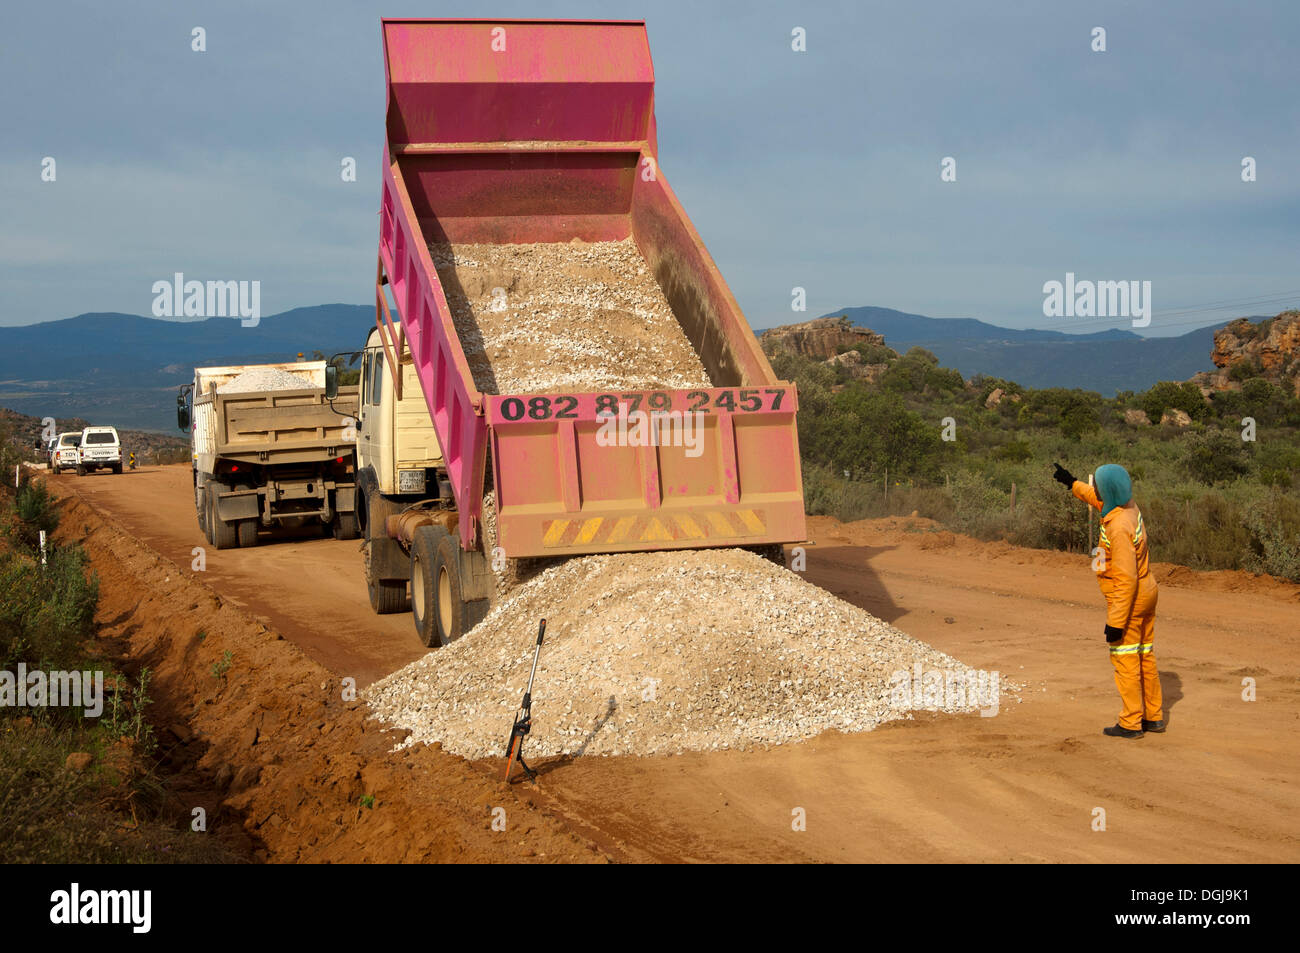 Dump Truck Unloading Gravel On A Street Road Construction In The Cederberg Region Clanwilliam Western Cape South Africa